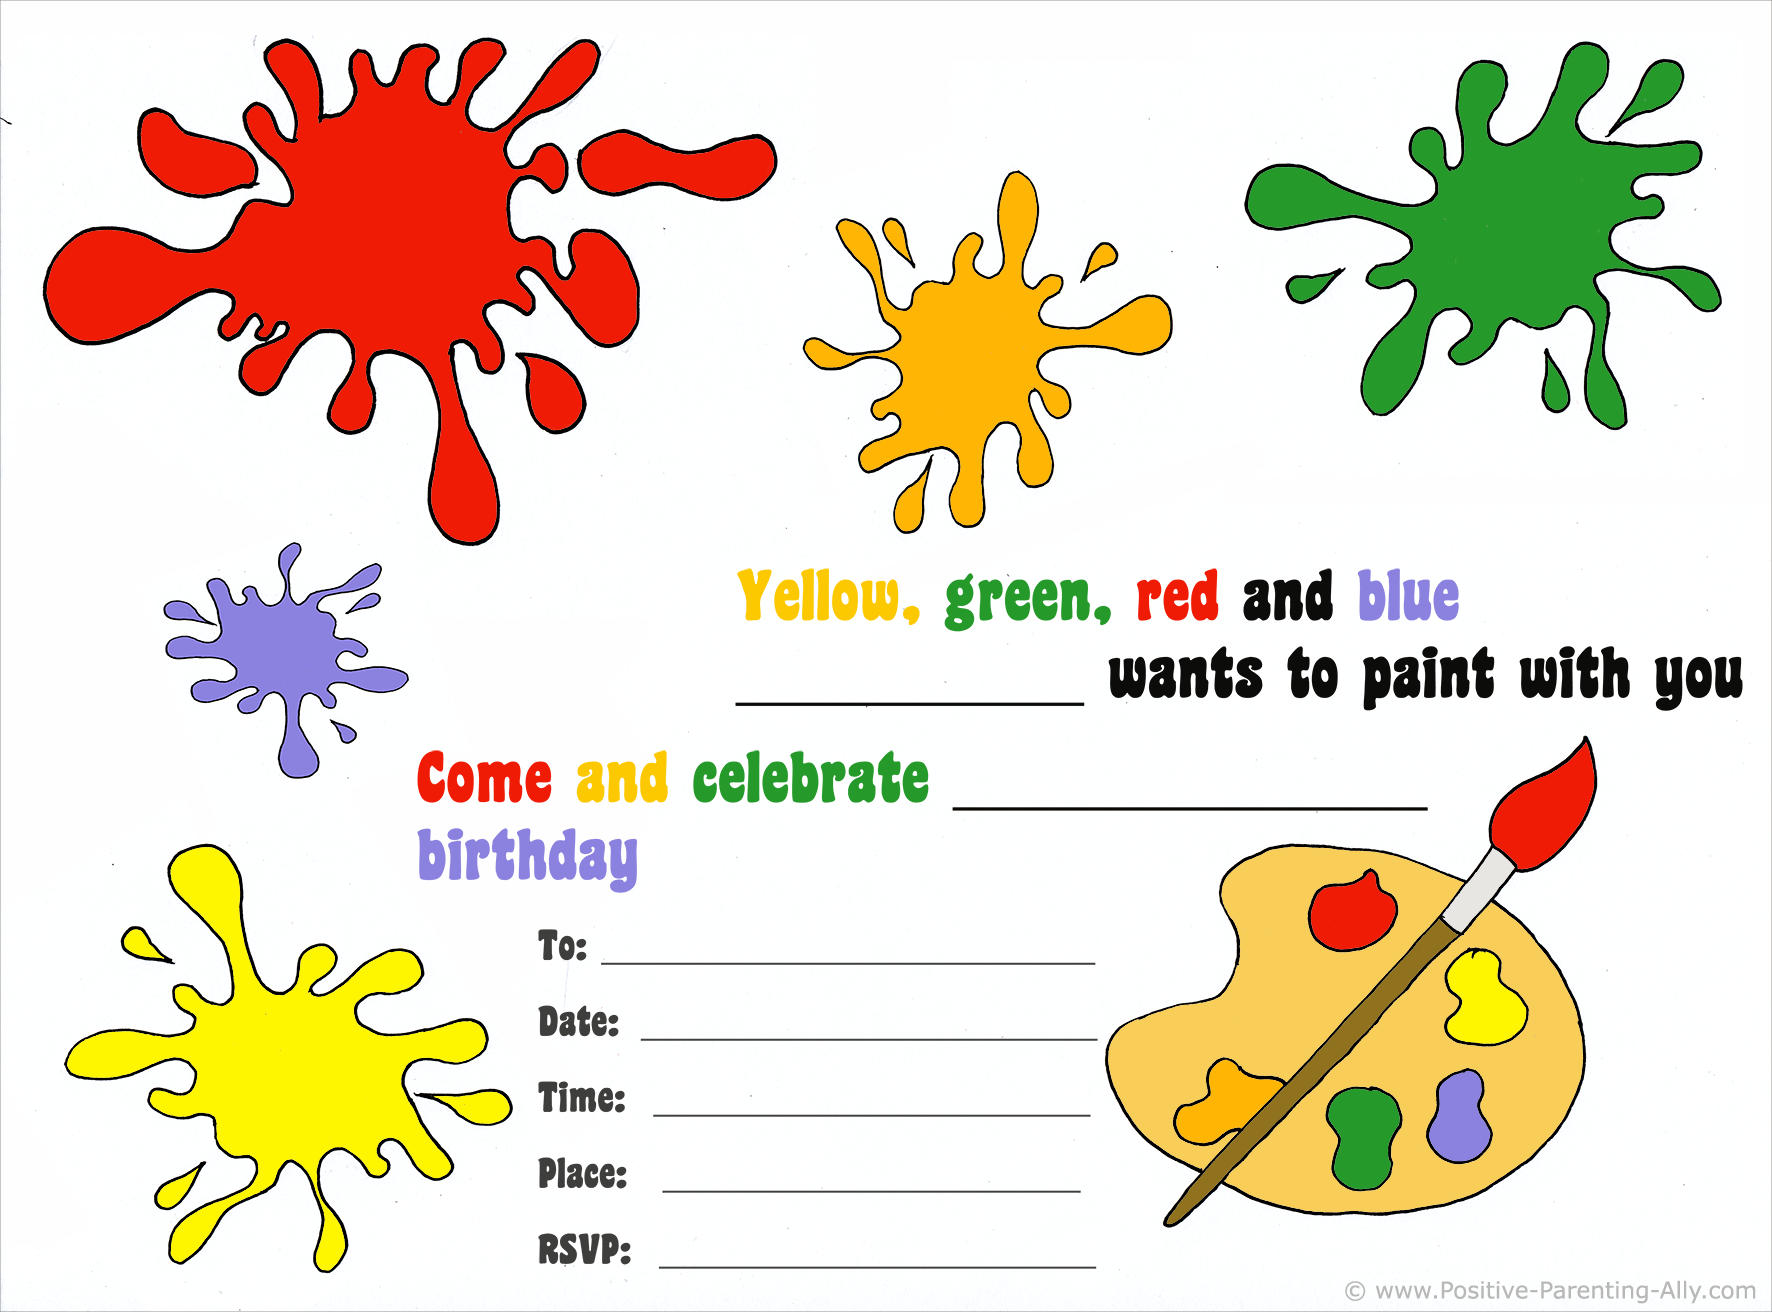 Free birthday invitations: Arts and crafts theme birthday party invite for kids.